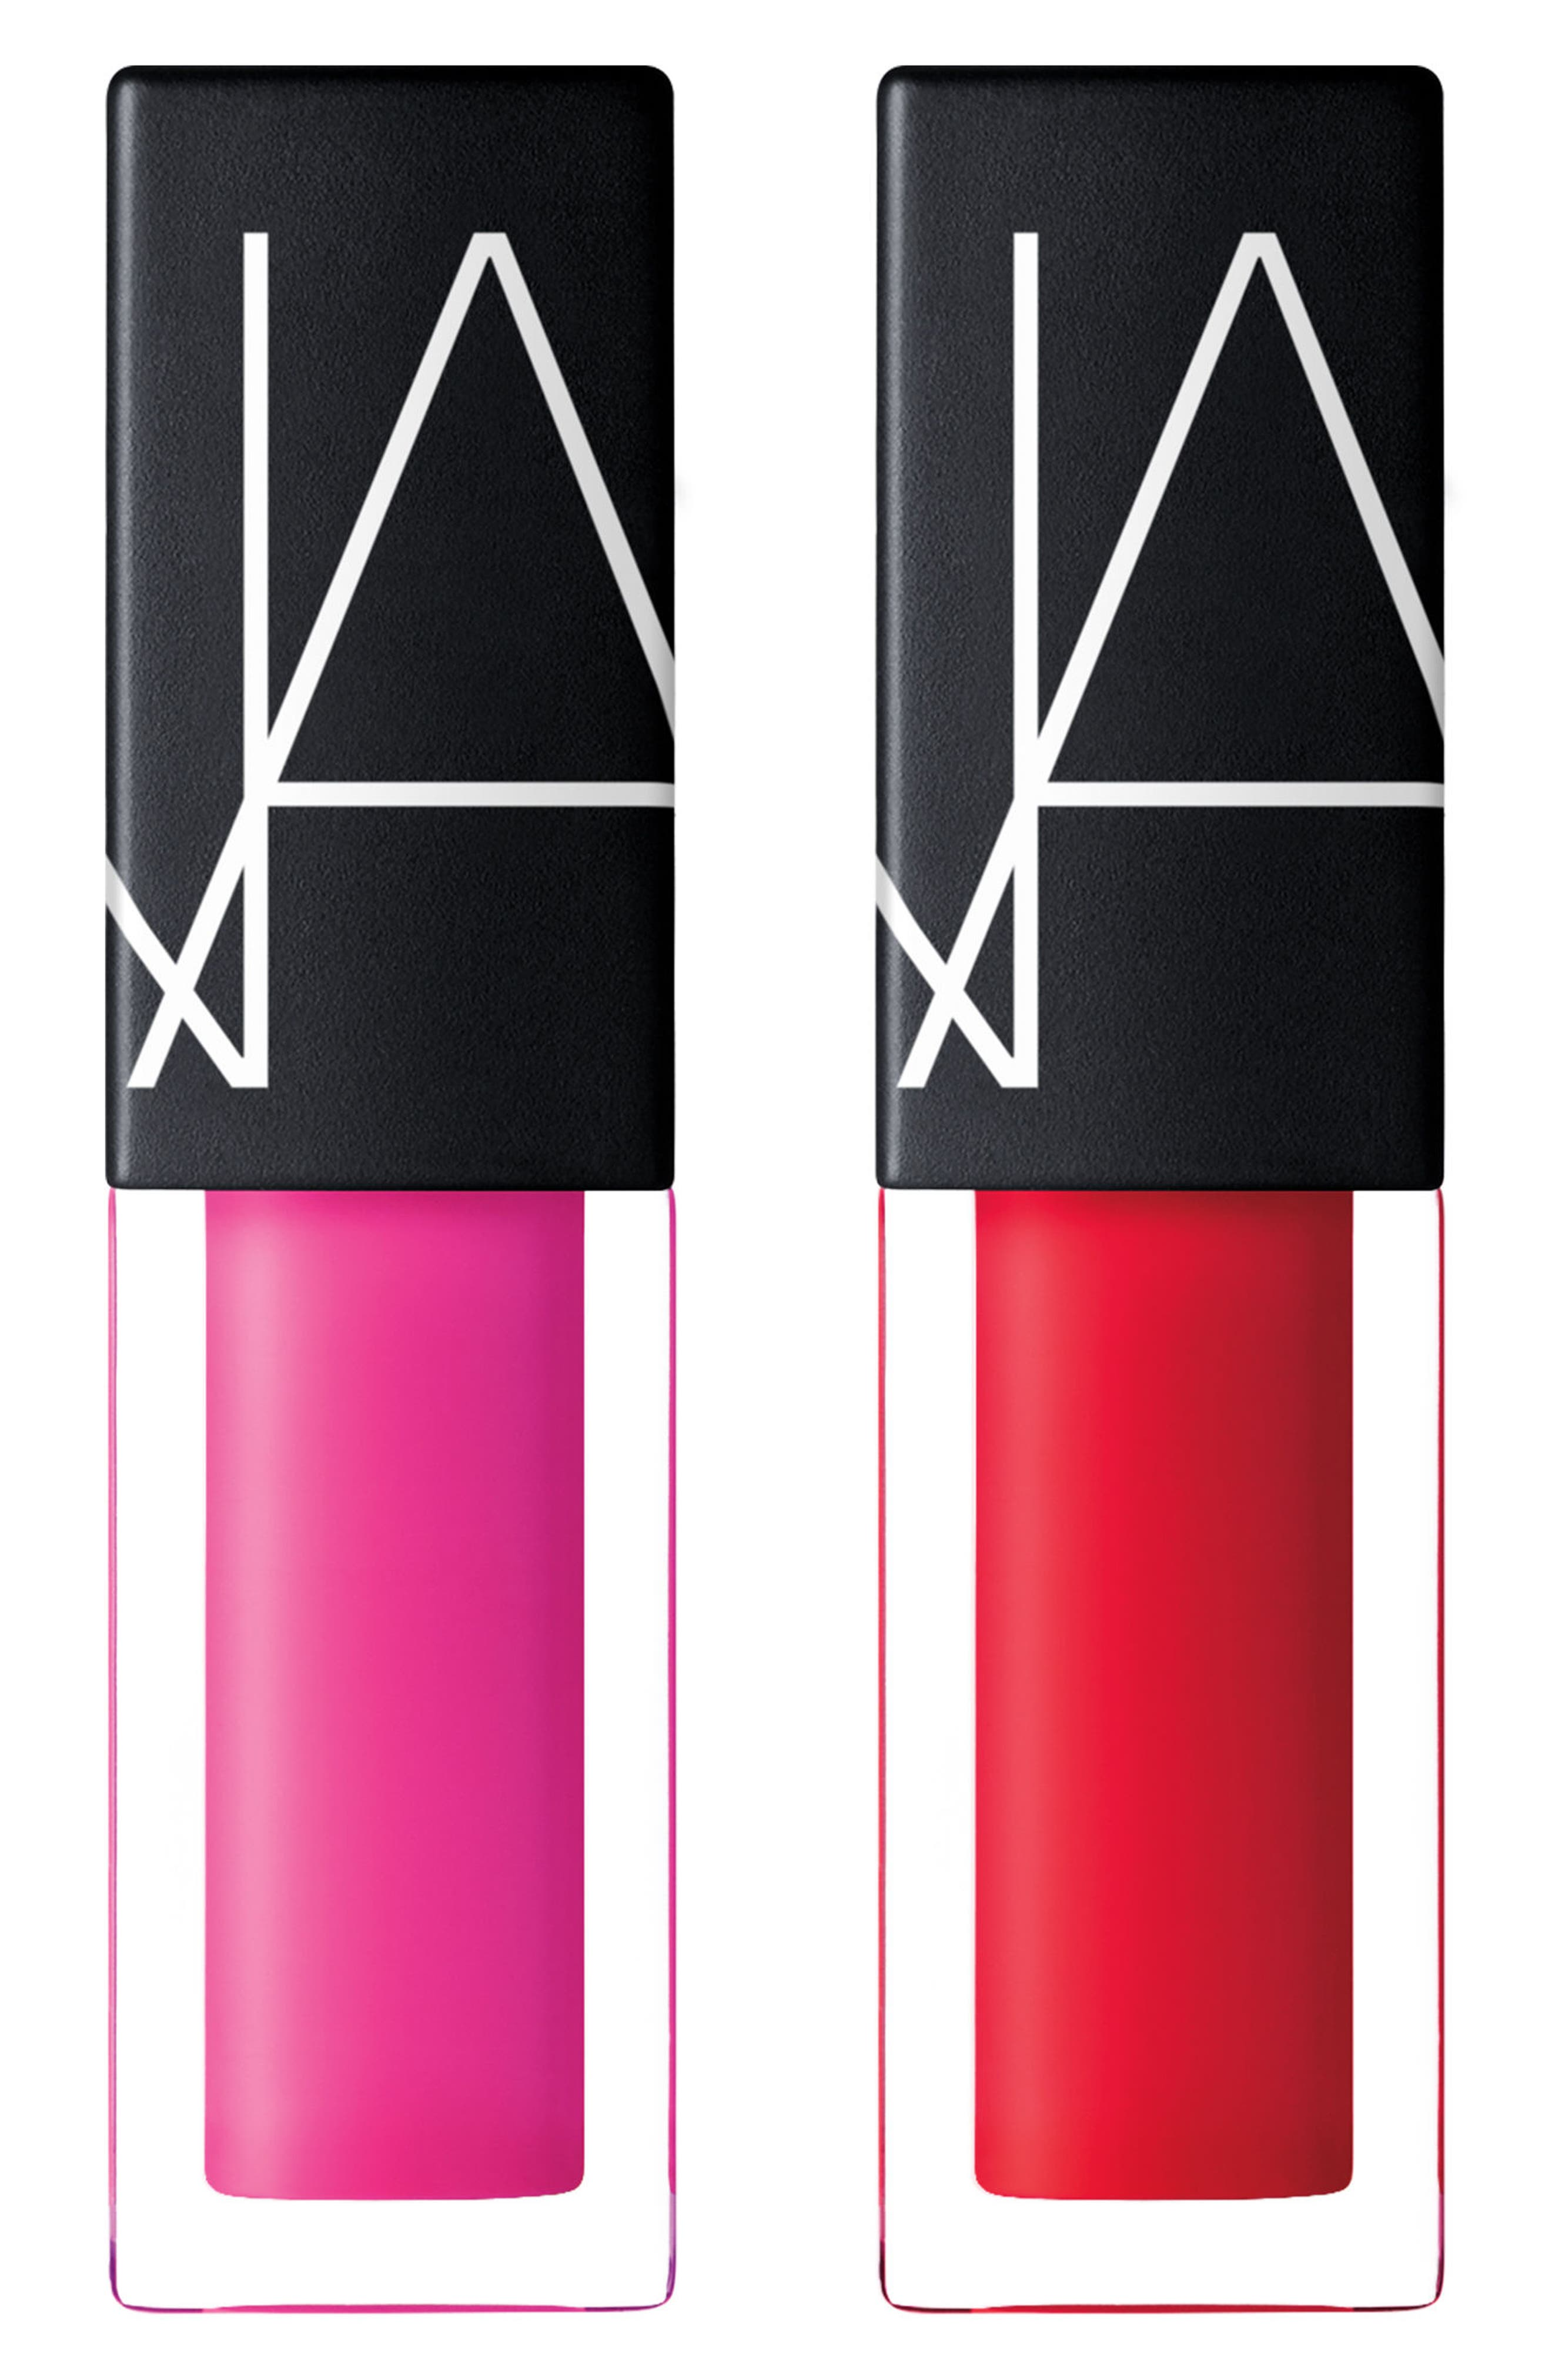 NARS Velvet Lip Glide Duo ($30 Value)